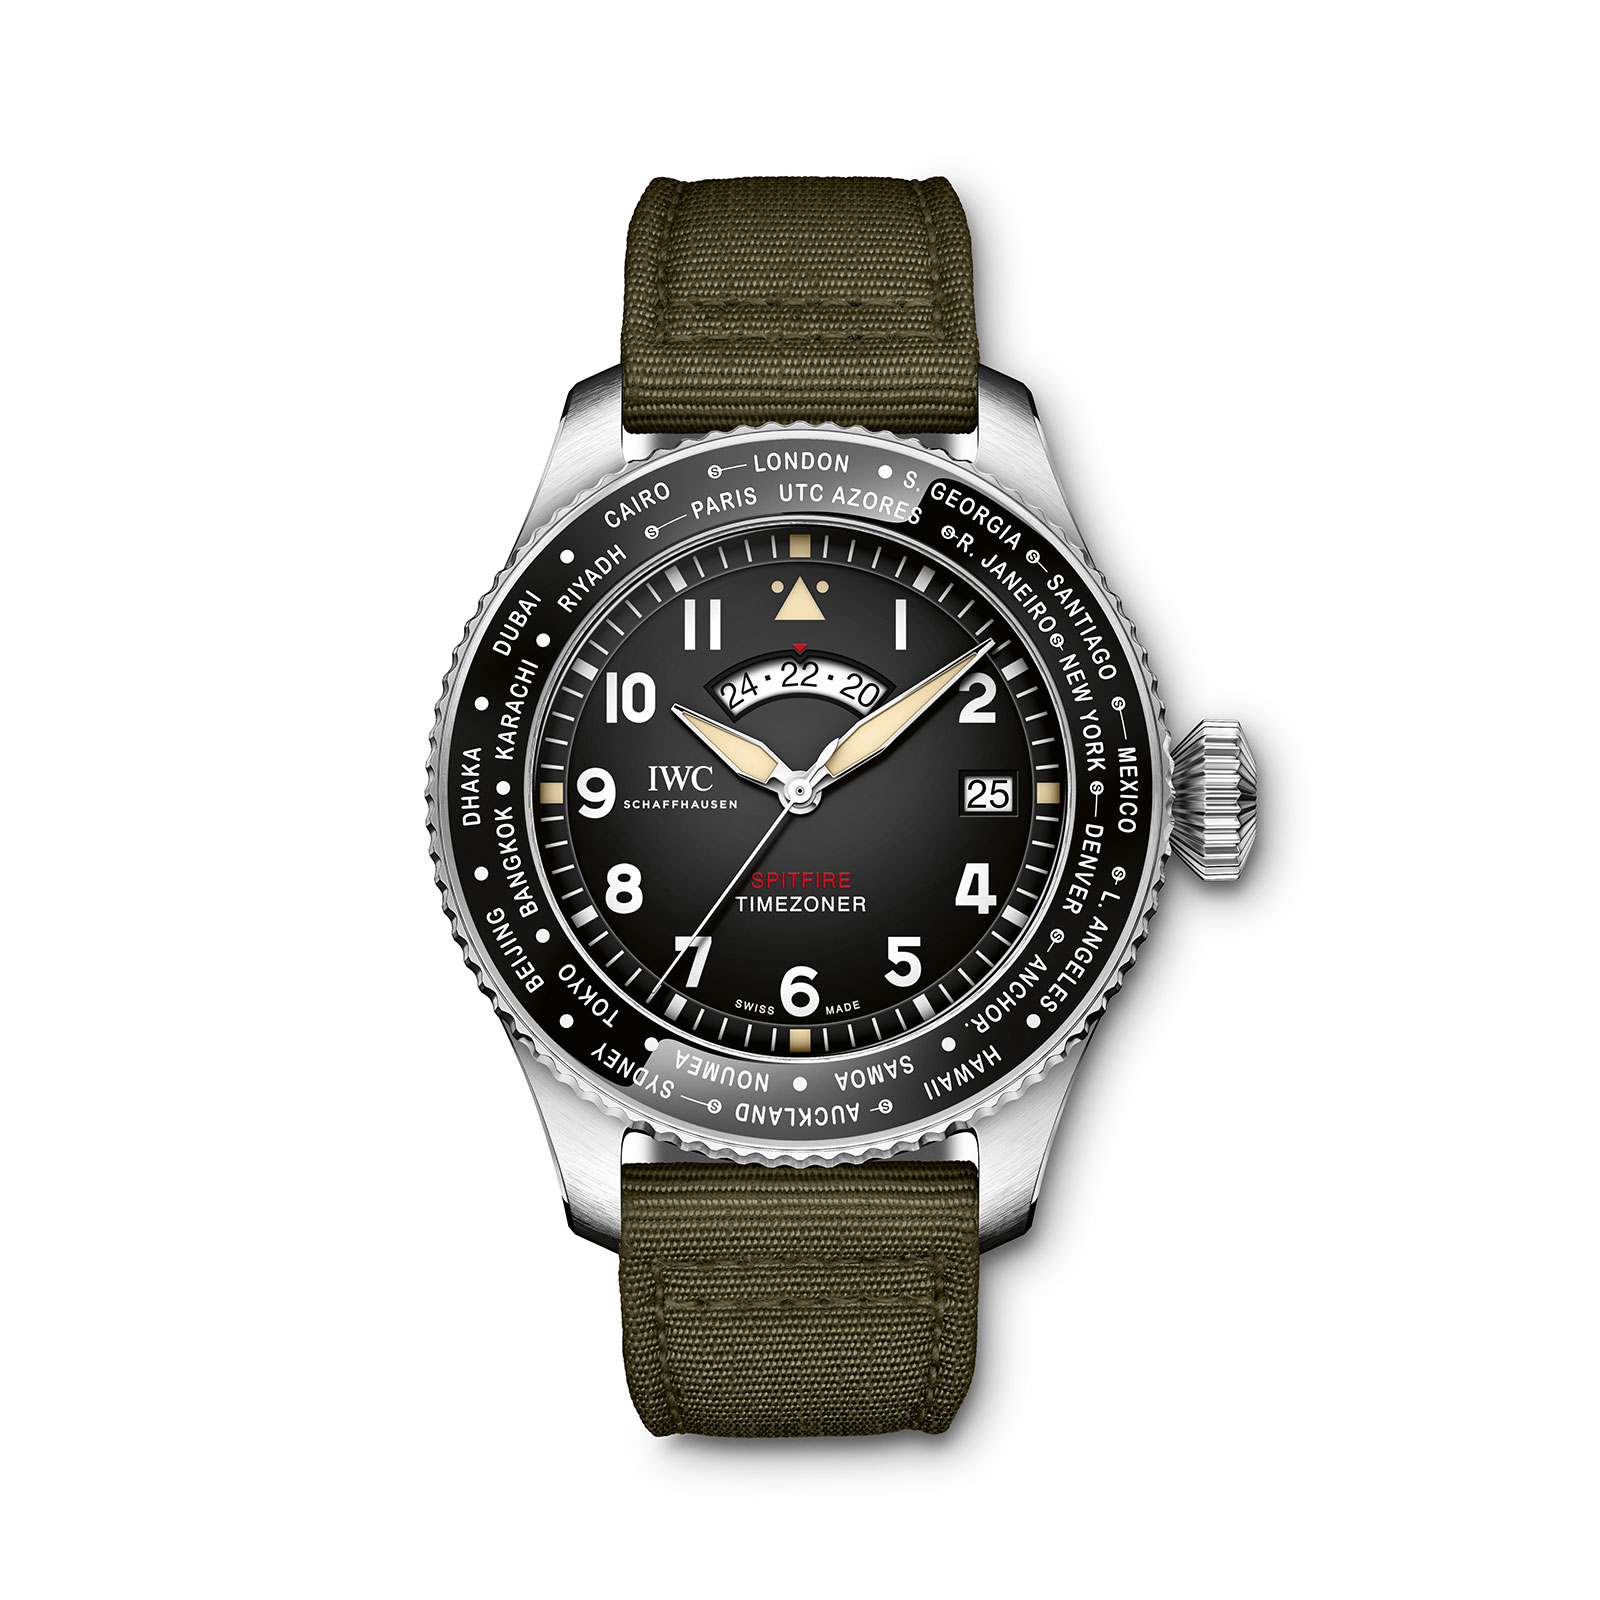 IWC Pilot Watch Timezoner Spitfire Edition The Longest Flight The-Ducker